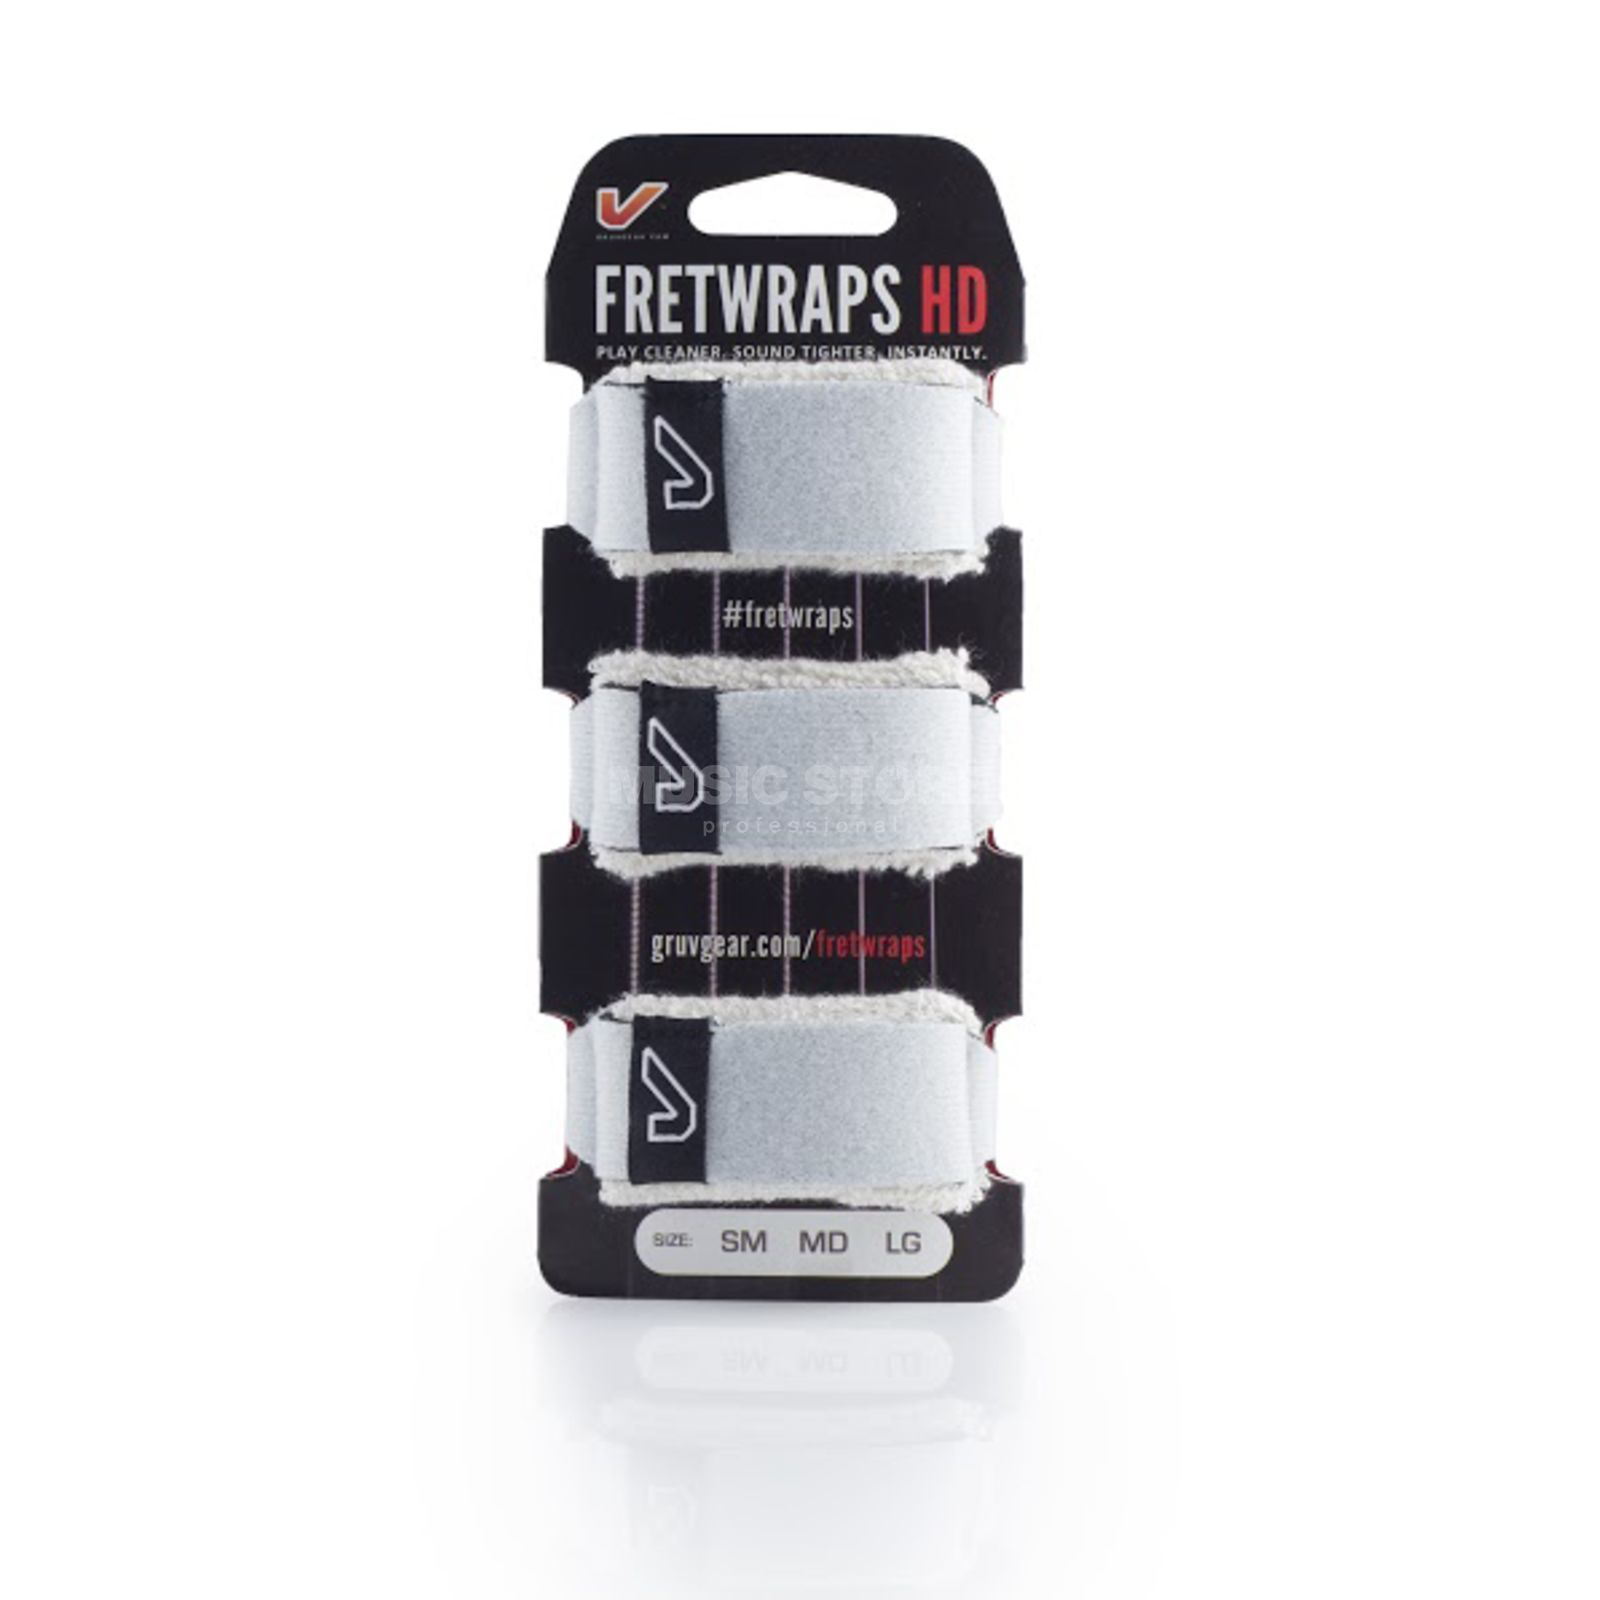 Gruv Gear Fret Wraps HD Stone White XL, 3er Pack Produktbillede